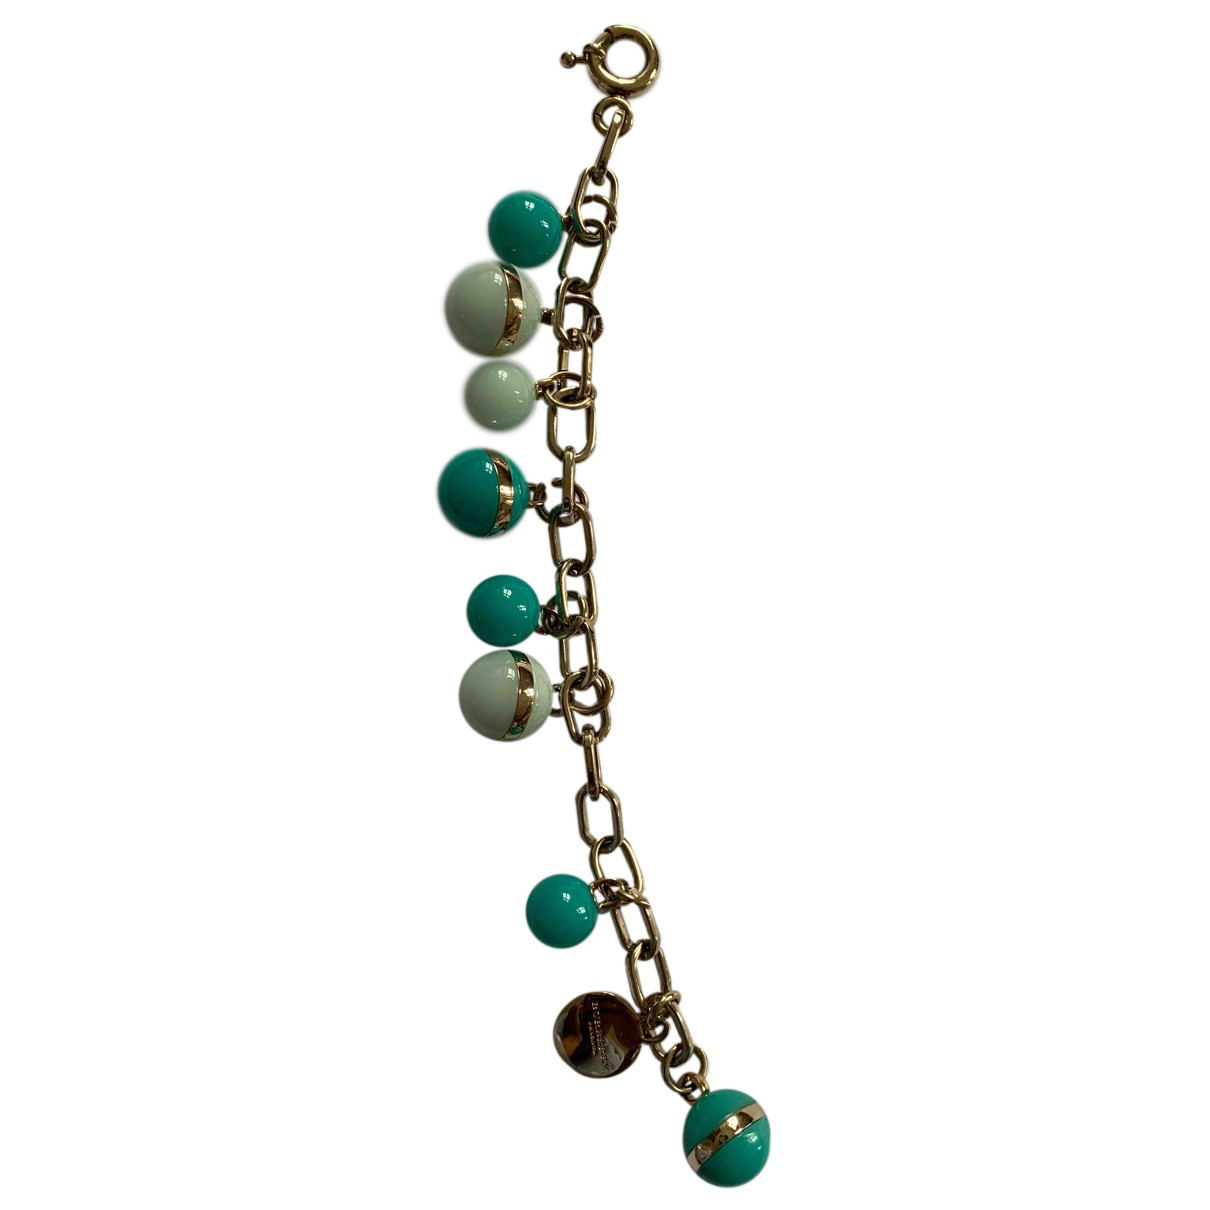 Burberry N Green Metal bracelet for Women N